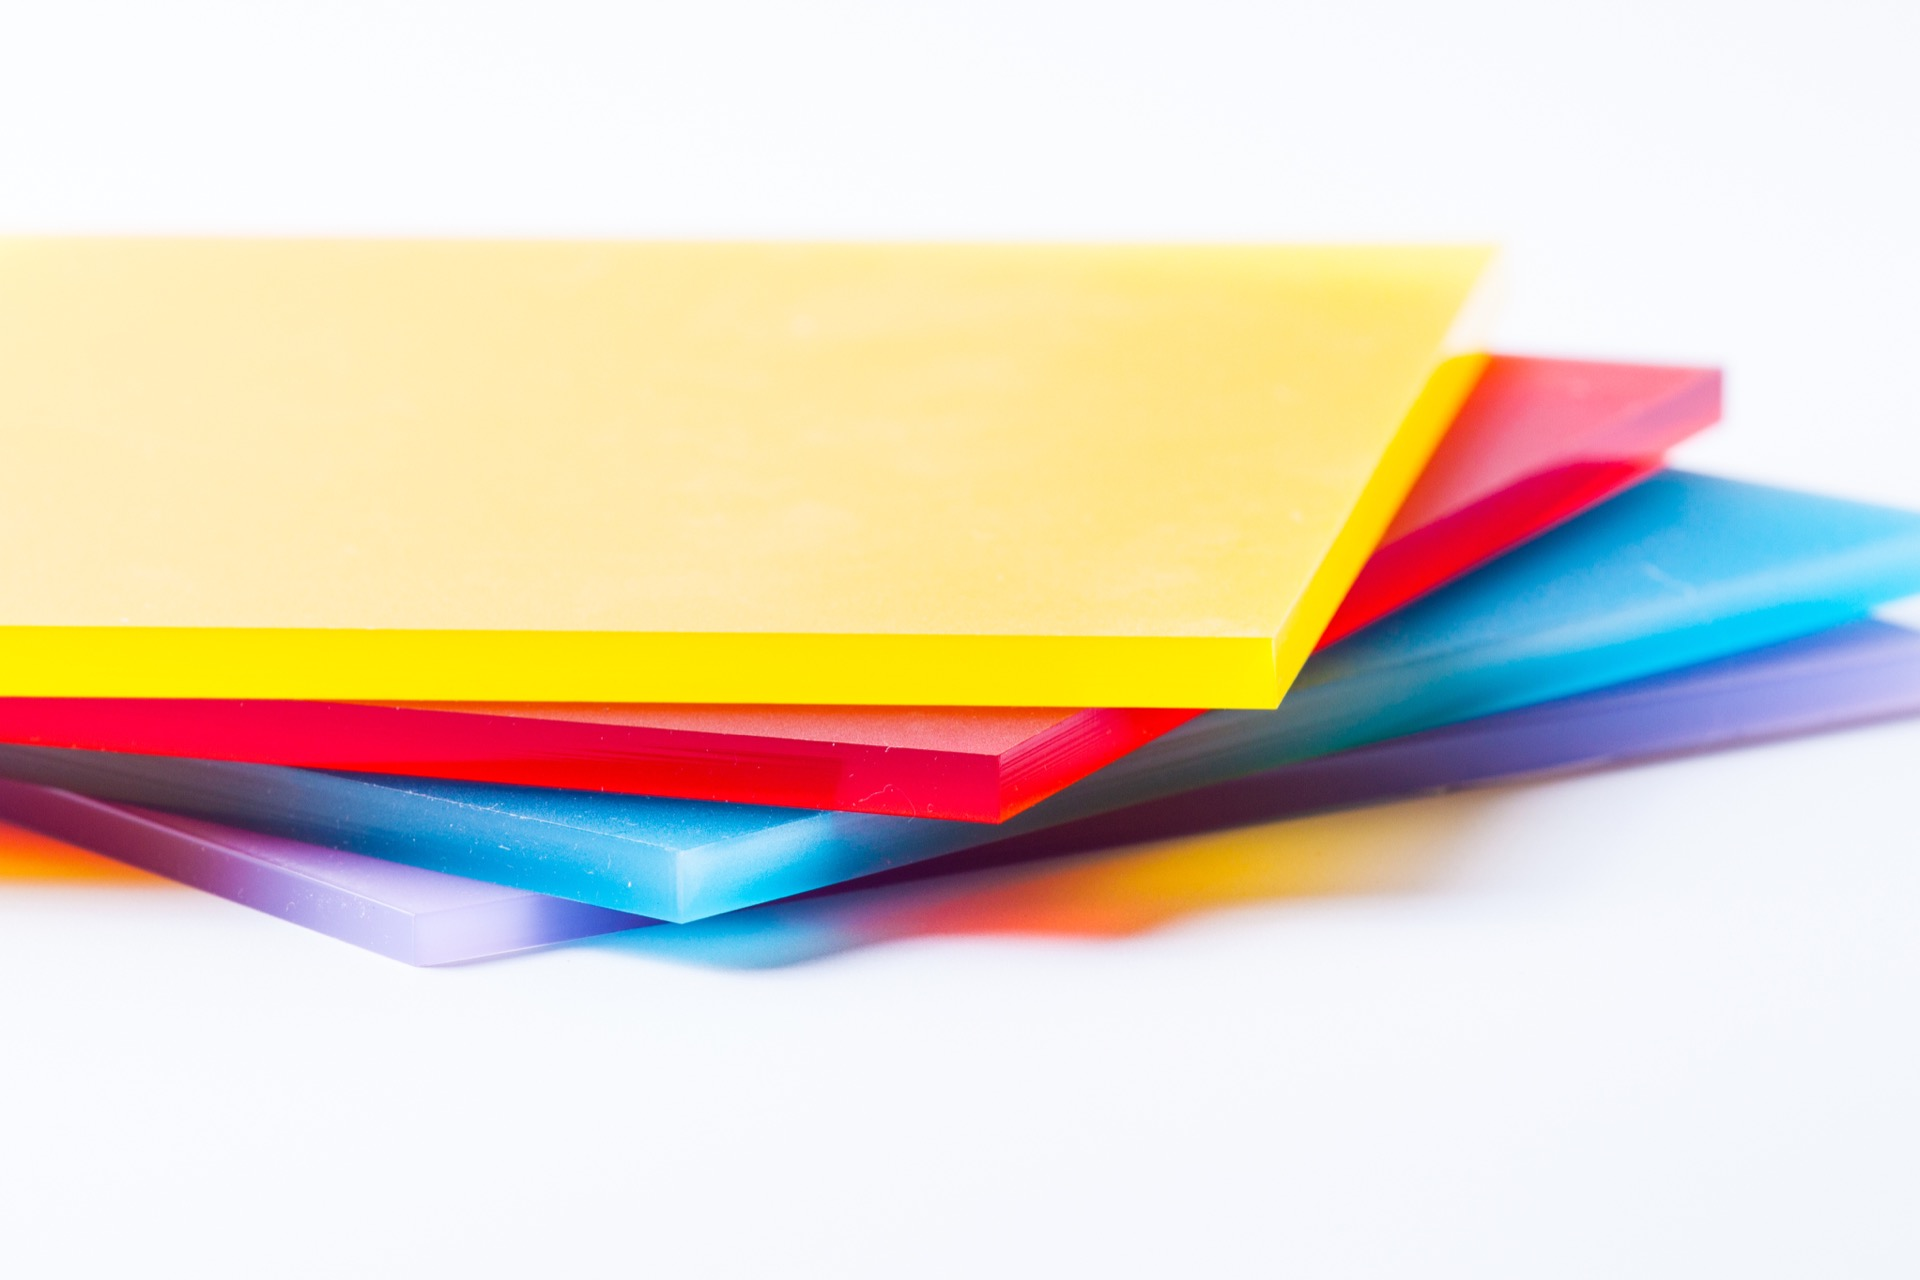 Sheets of coloured acrylic plastic